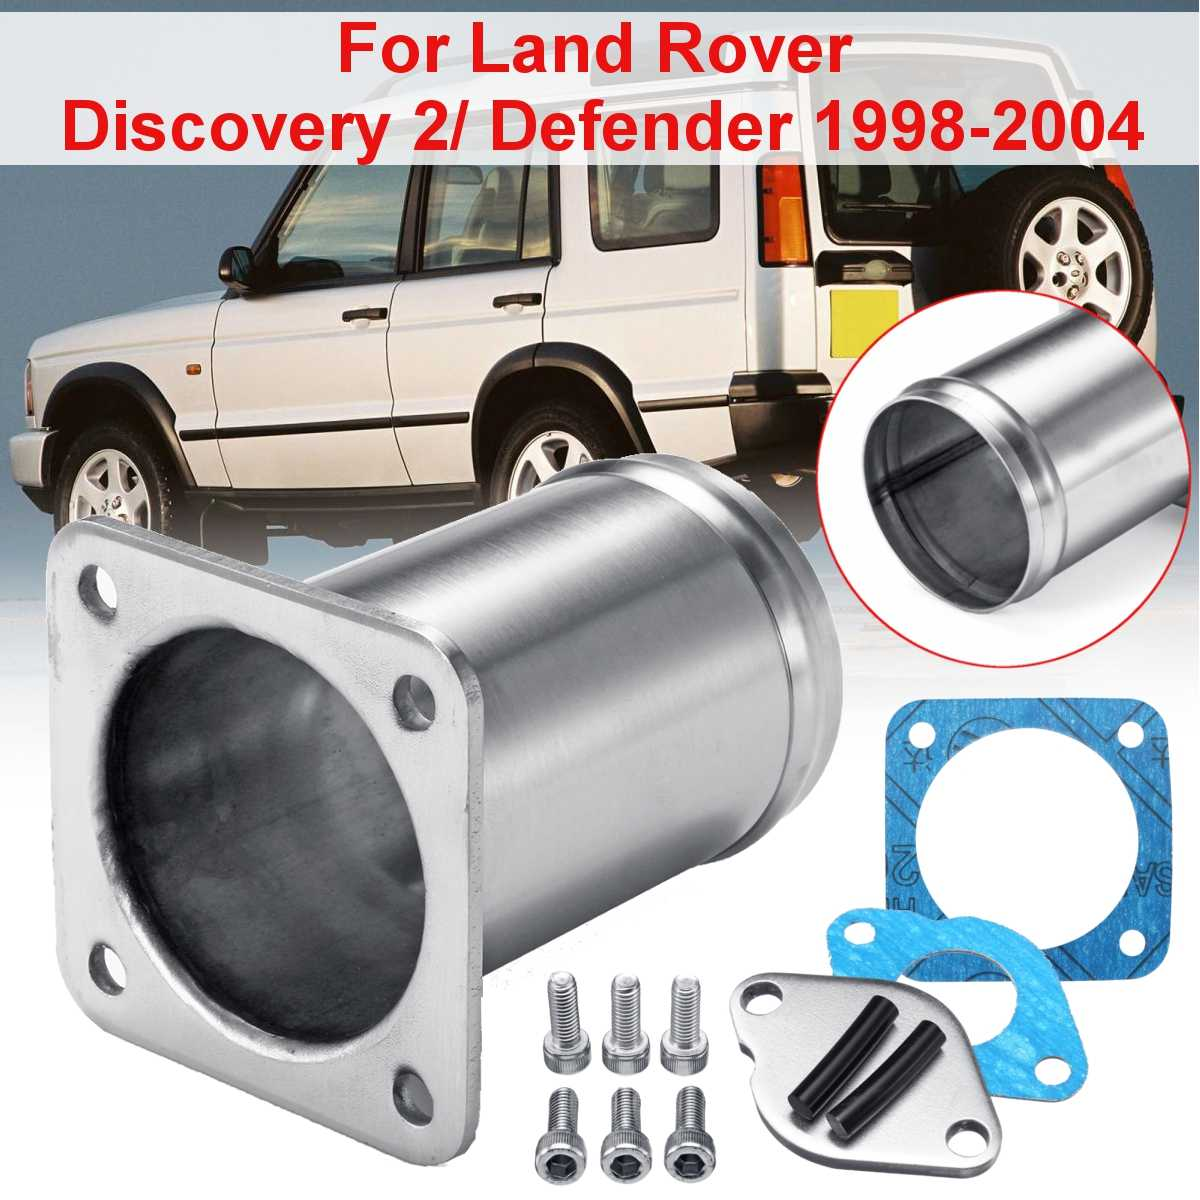 Car Stainless Steel EGR REMOVAL Kit / EGR Valve Blanking Plate For LAND ROVER DISCOVERY 2 DEFENDER TD5 JR-EGR11  Accessories